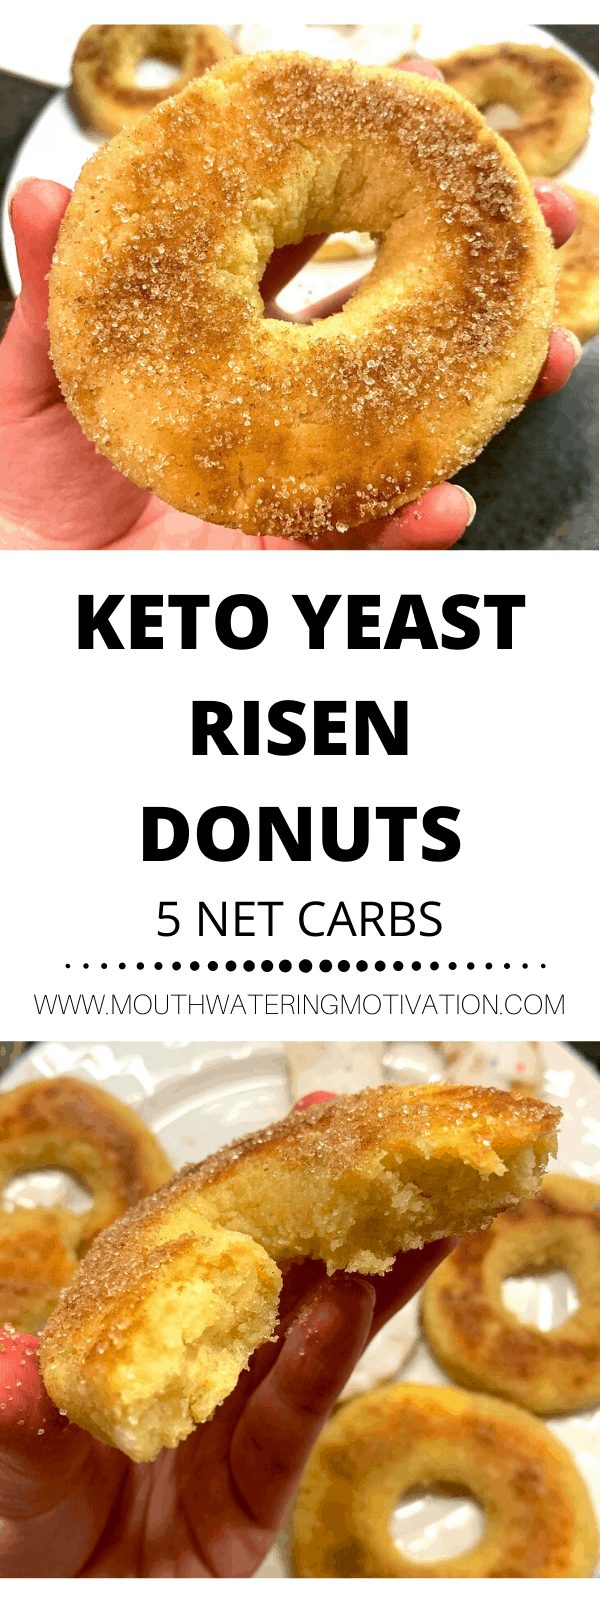 KETO YEAST RISEN DONUTS.png